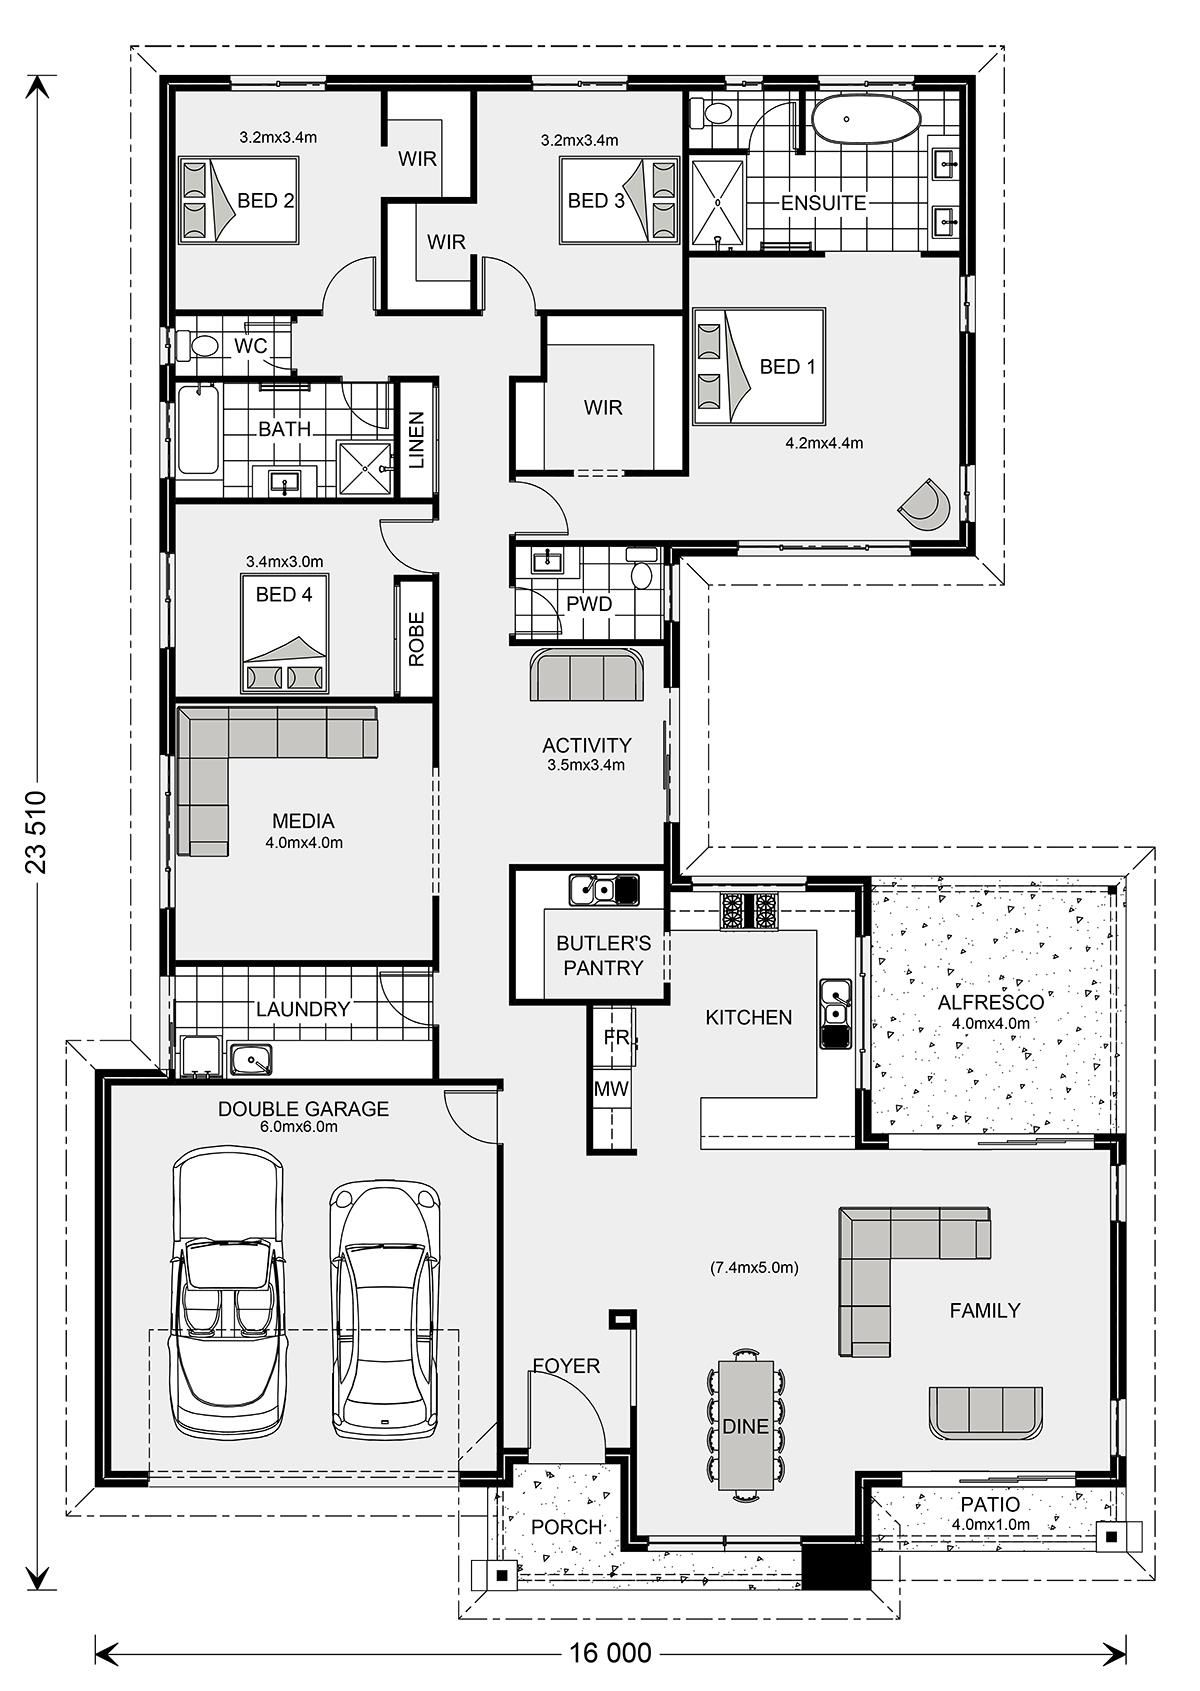 Lakeview 297 Home Designs In G J Gardner Homes Dream House Plans Hotel Floor Plan Home Design Floor Plans